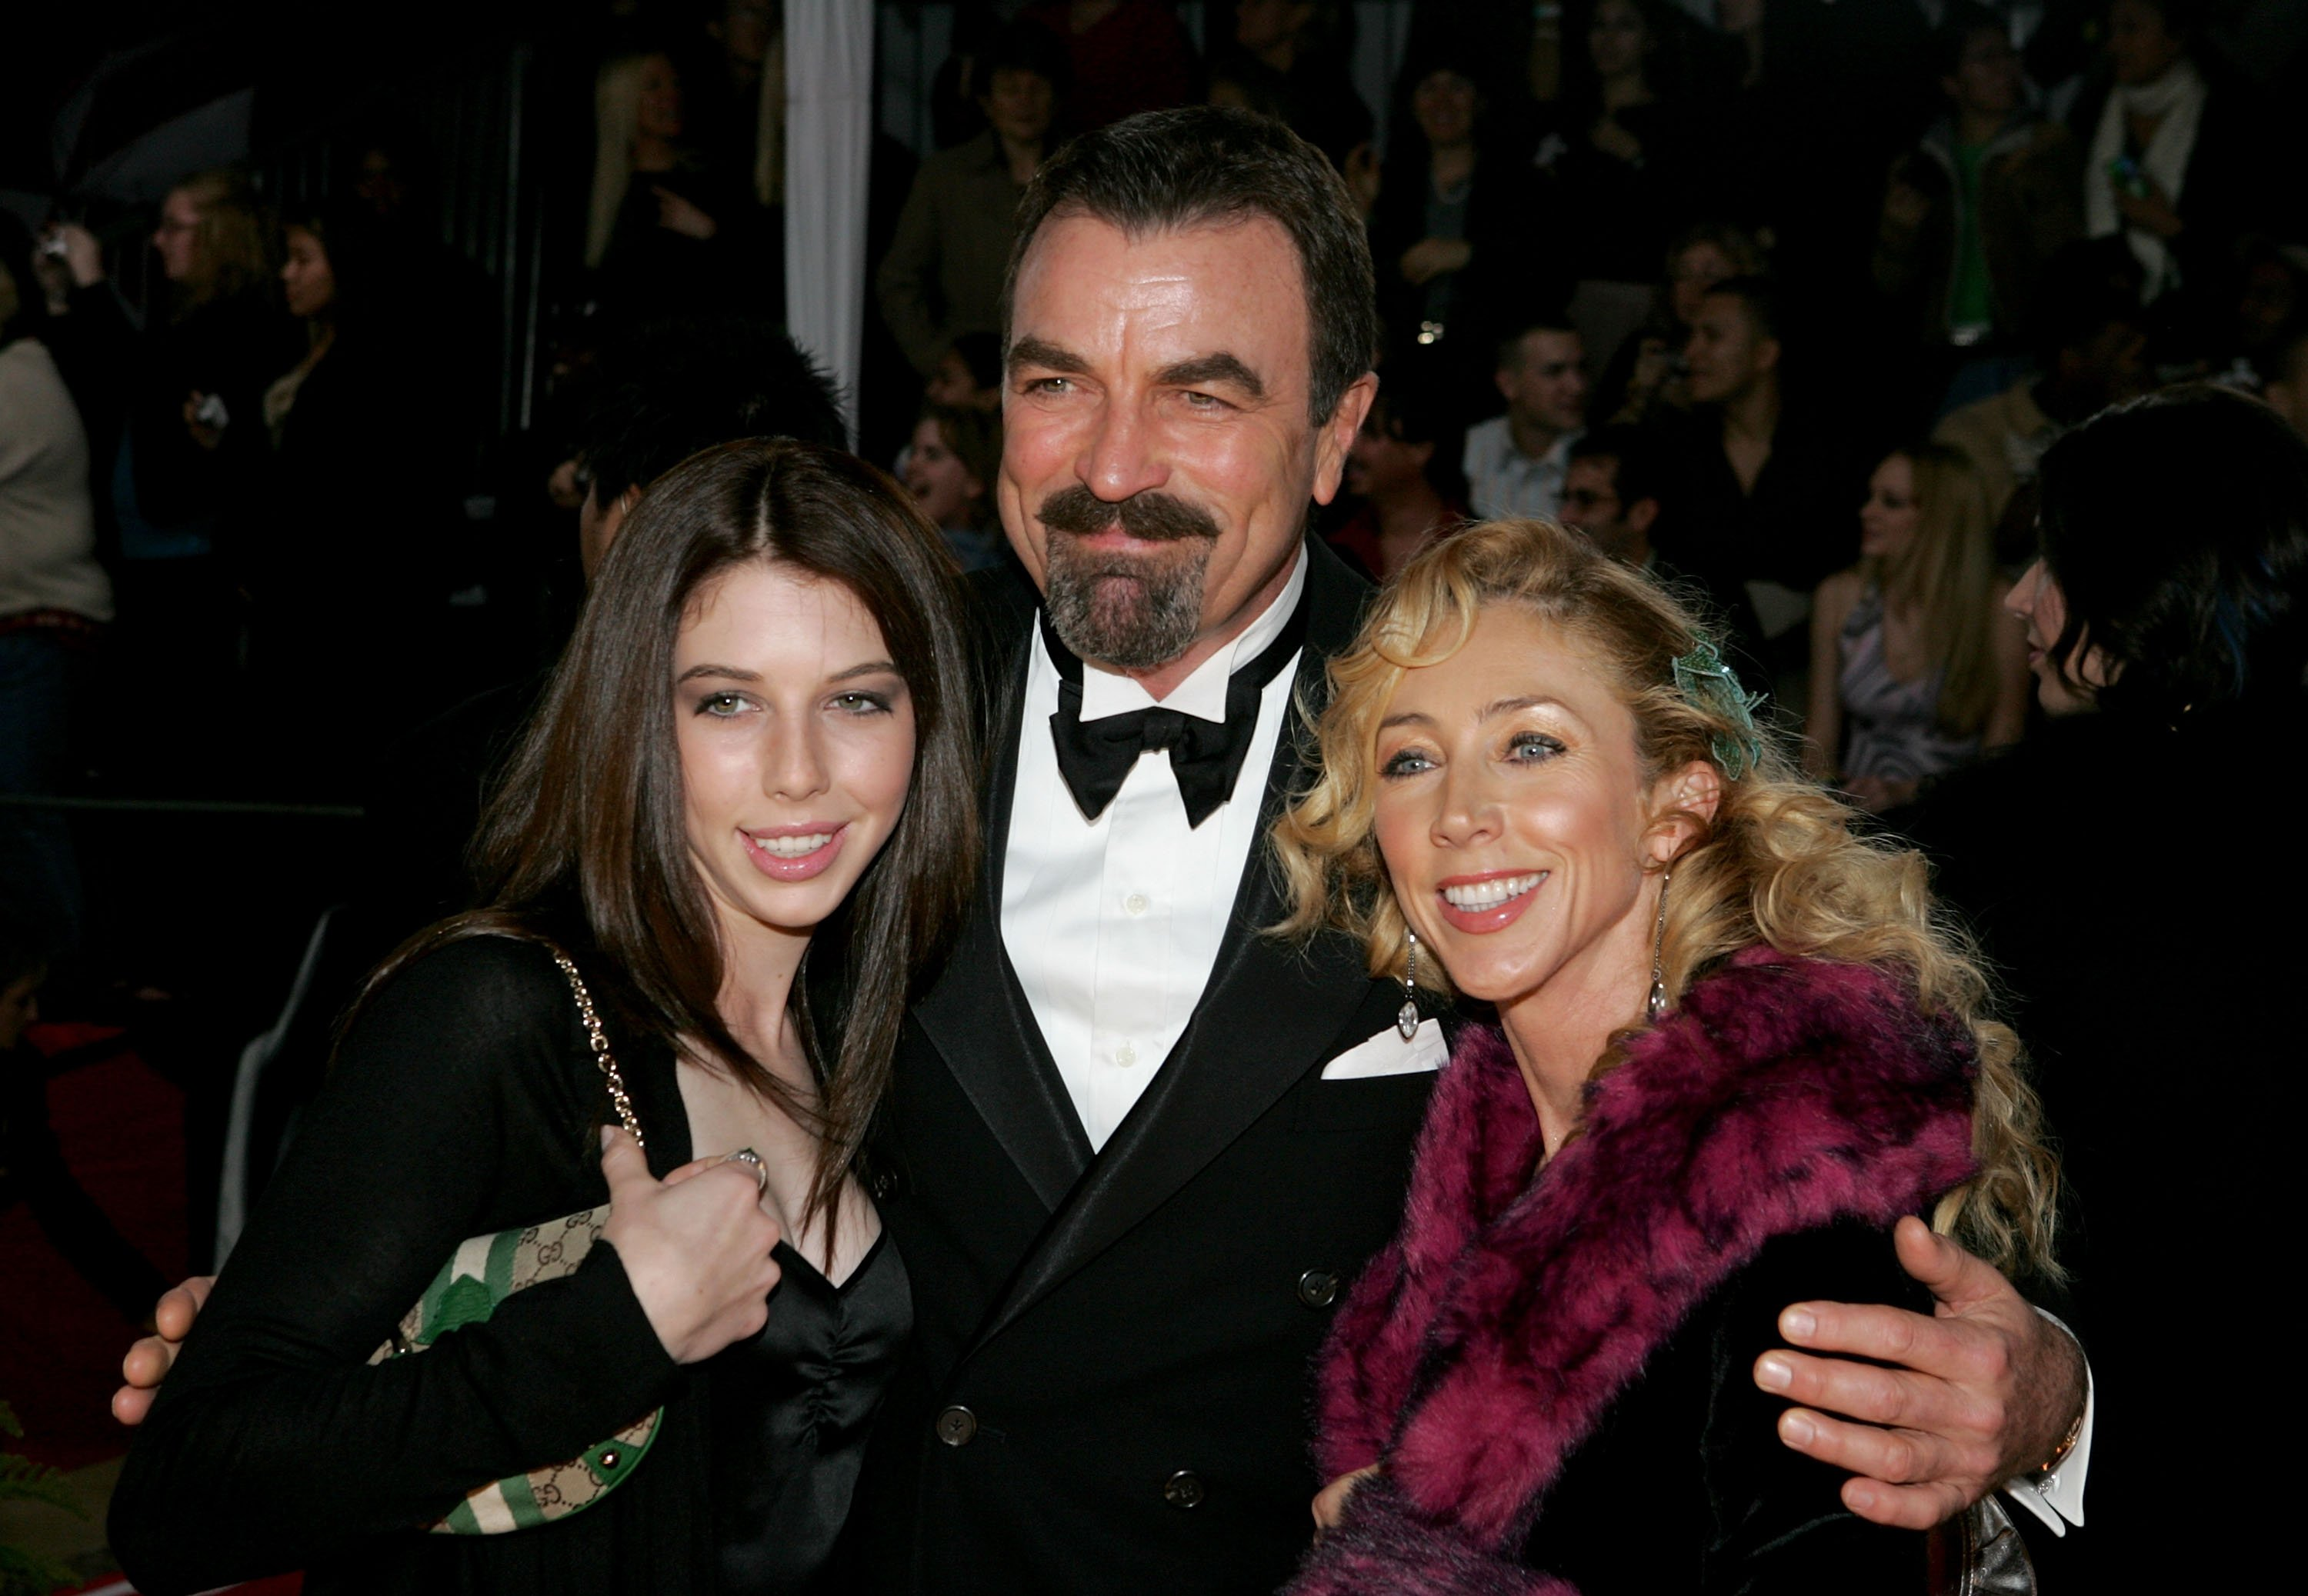 Image Credit: Getty Images/Vince Bucci | Tom Selleck with wife Jillie Mack and daughter Hannah arrive at the 31st Annual People's Choice Awards